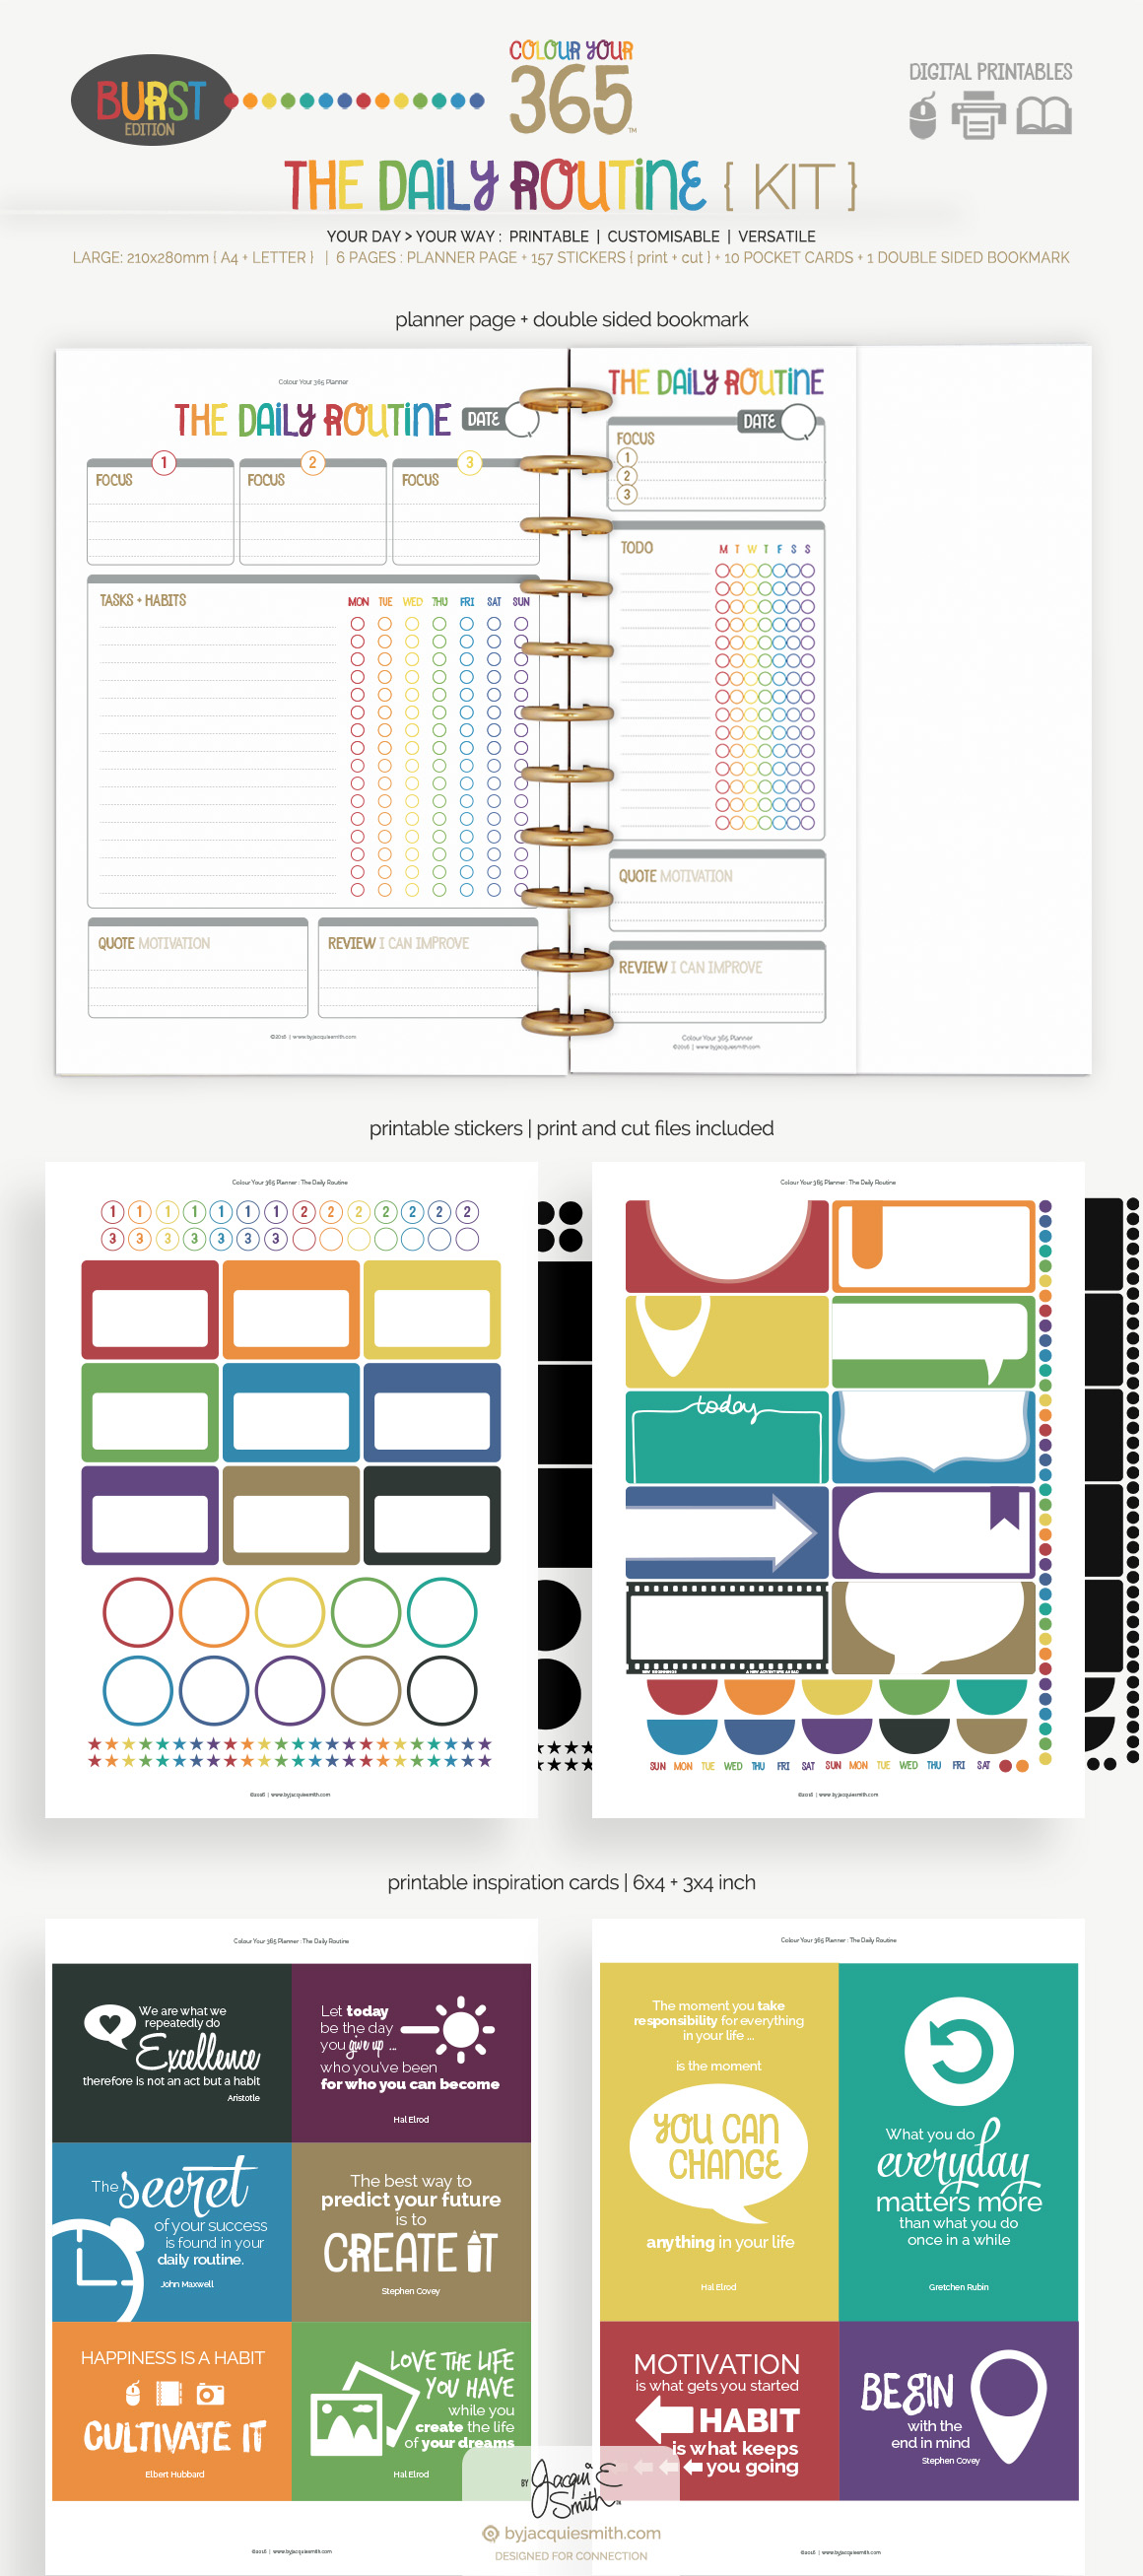 Colour Your 365 : Burst Edition - The Daily Routine planner printables at byjacquiesmith.com